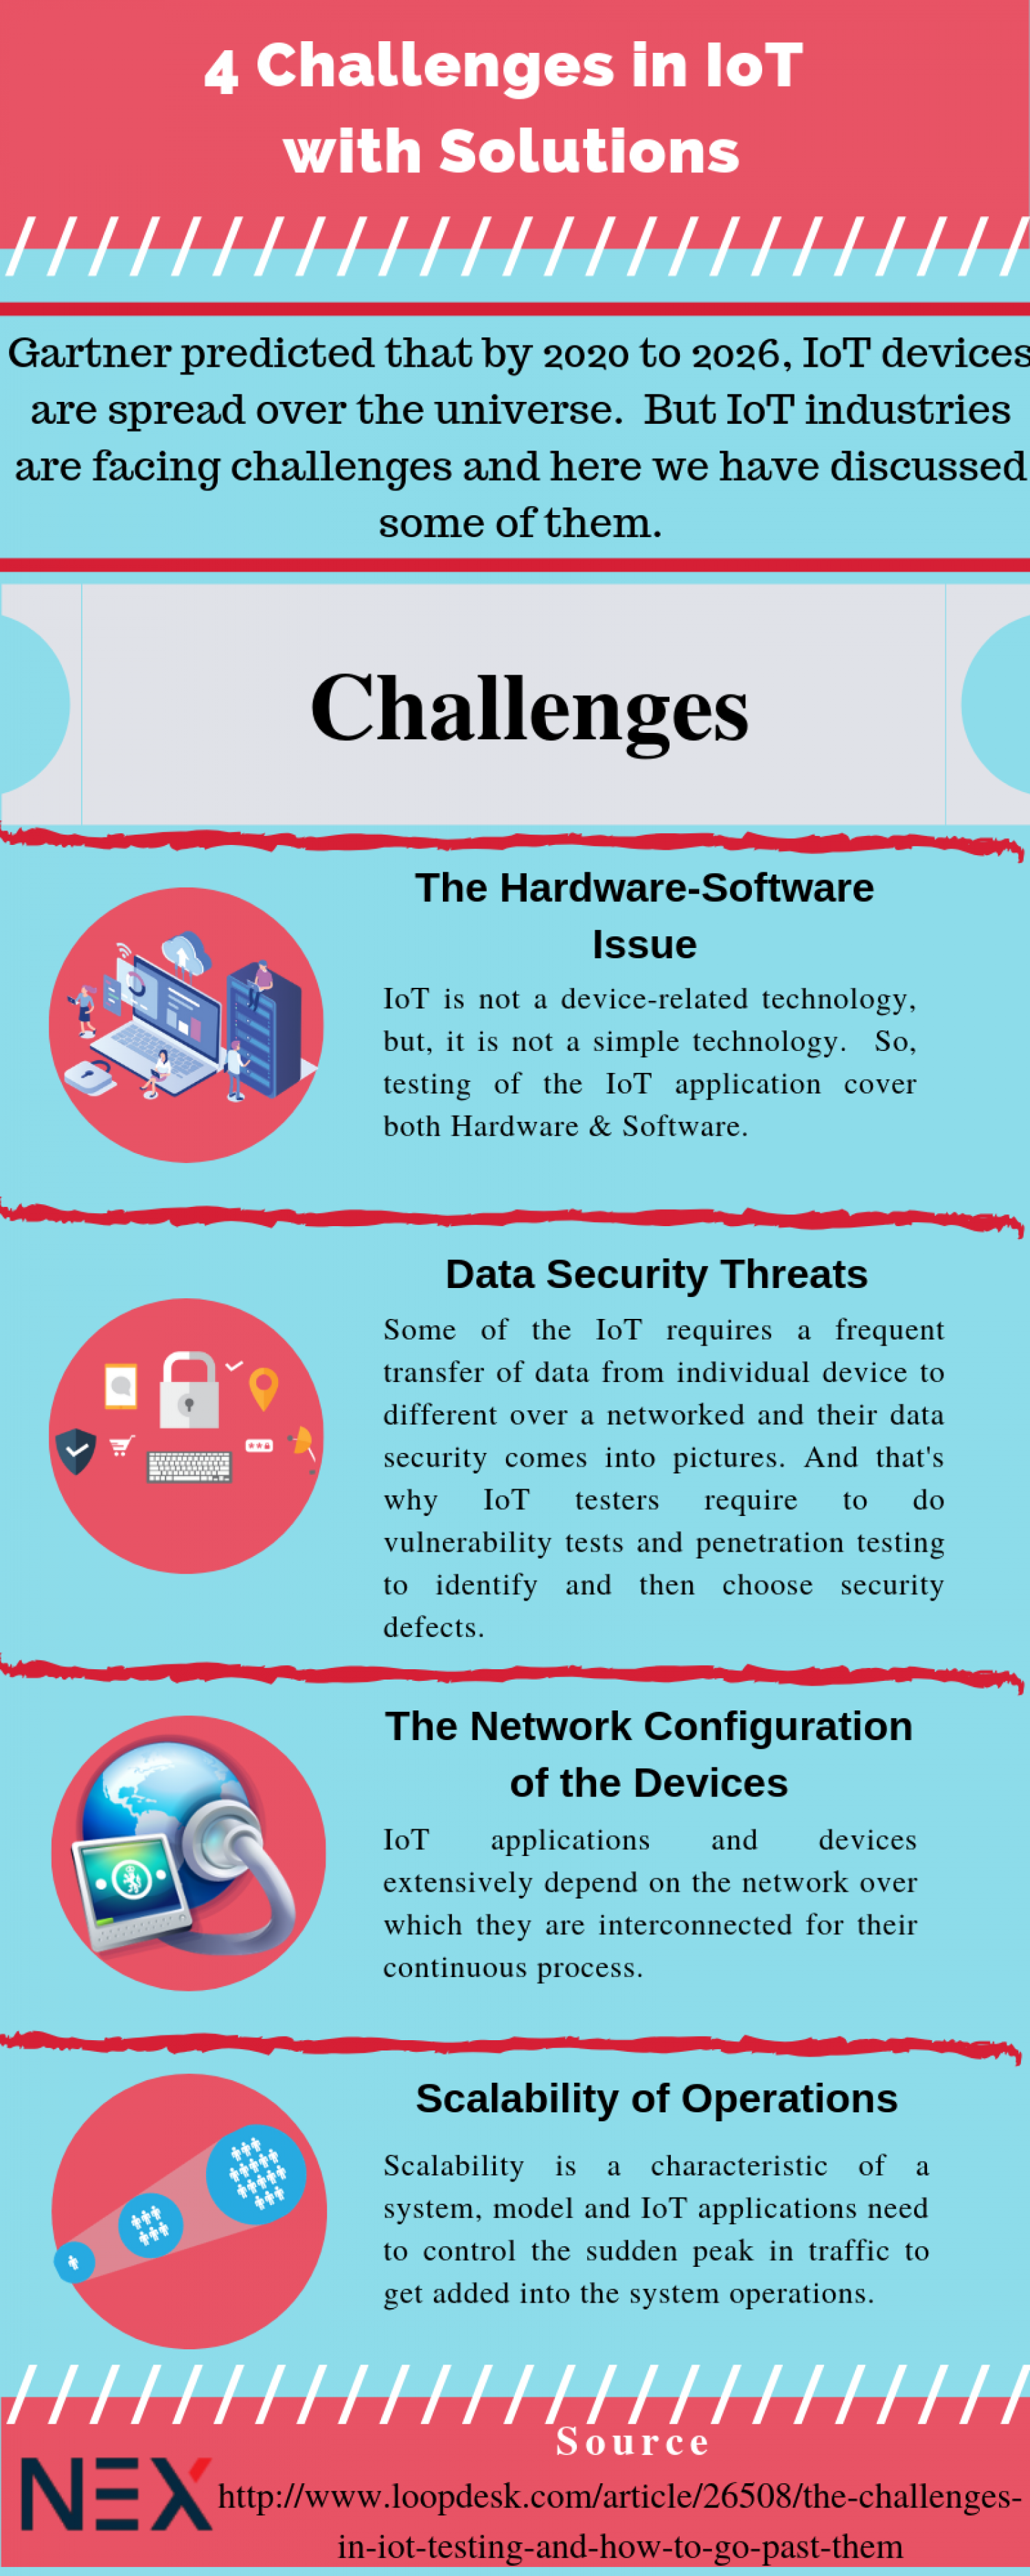 [IoT Testing]- 4 Challenges We may face in IoT Testing | Visual.ly